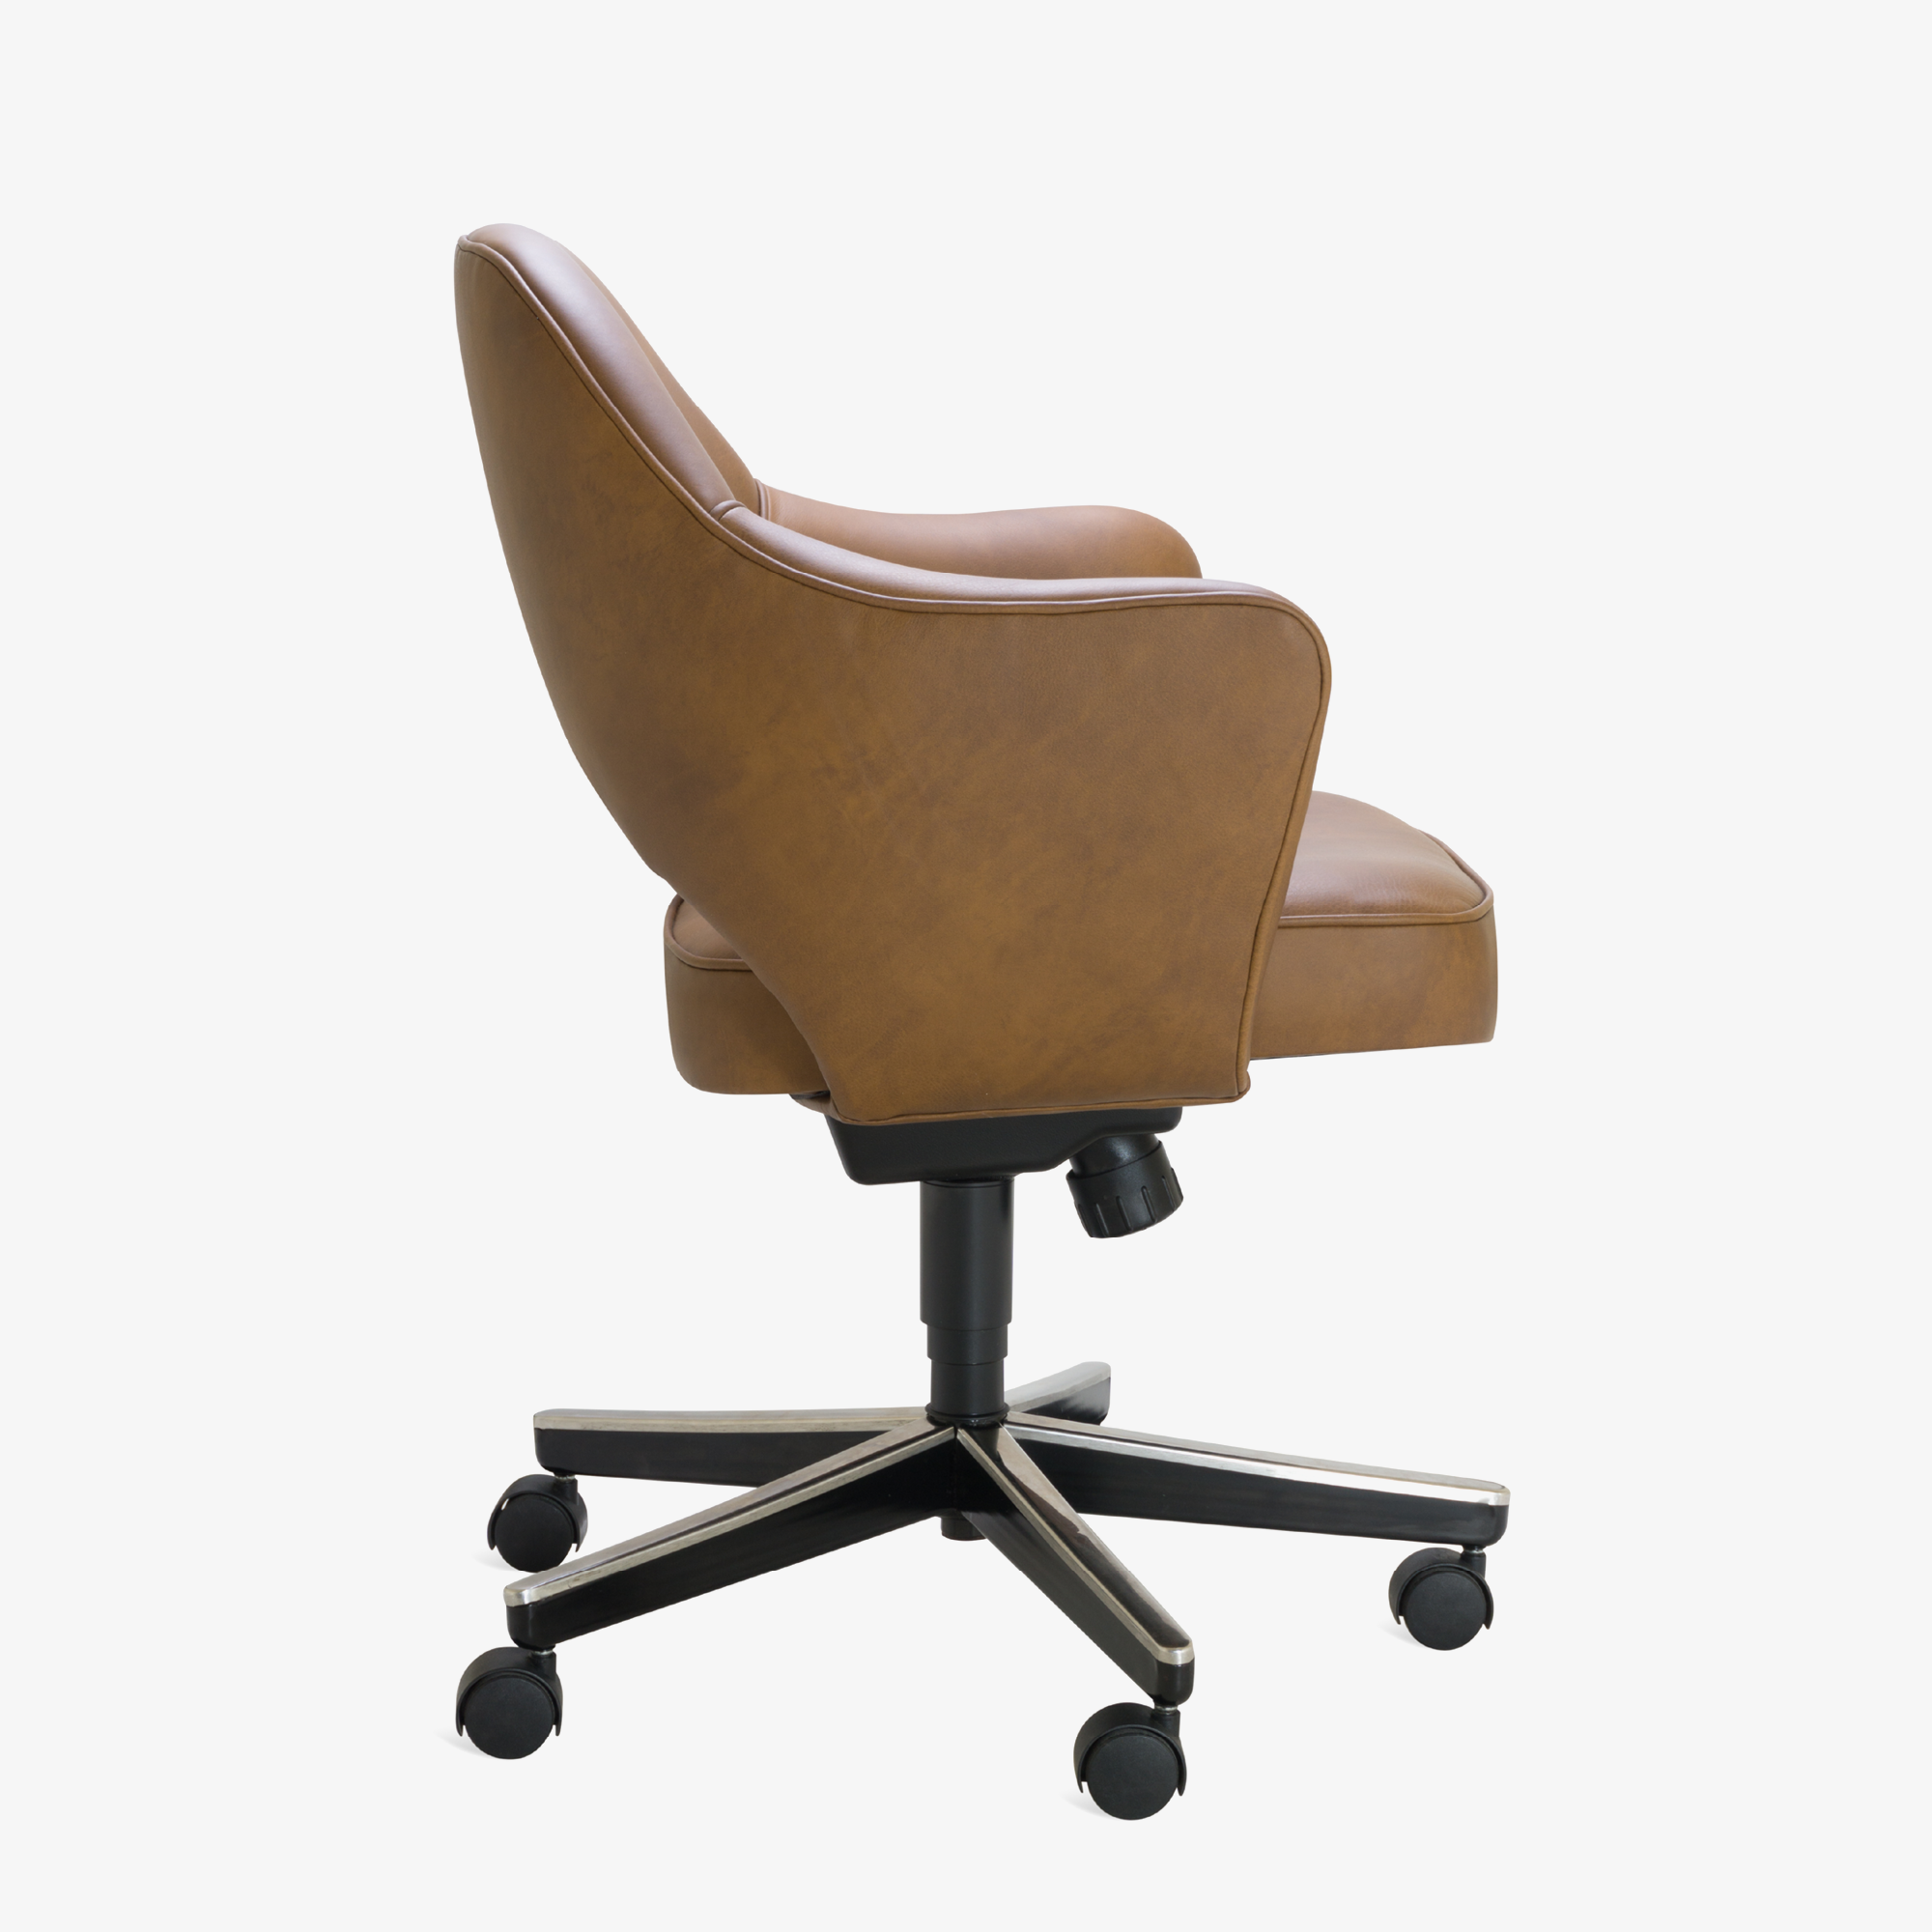 Saarinen Executive Arm Chair in Saddle Leather, Swivel Base3.png